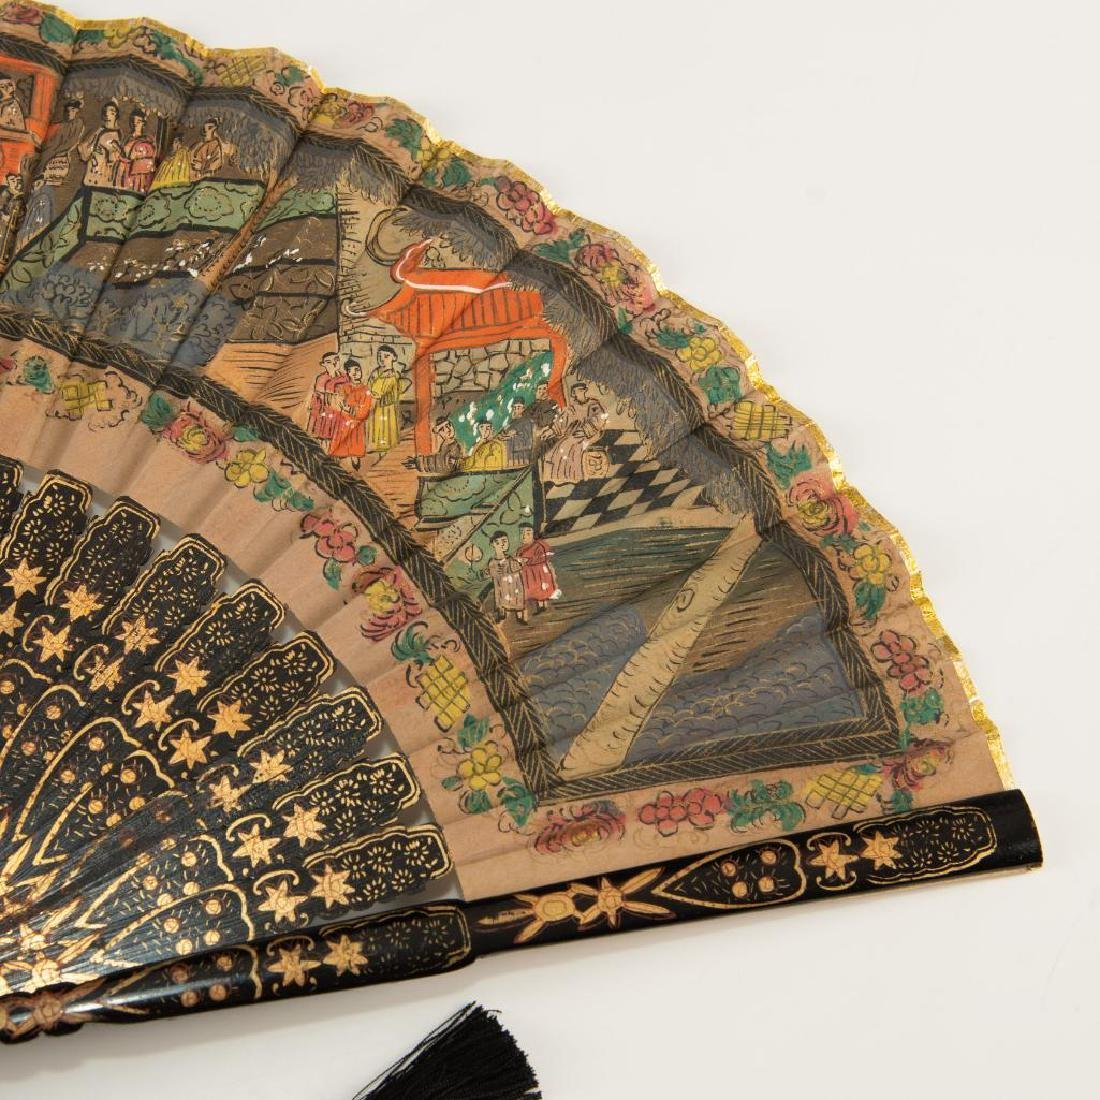 ANTIQUE CHINESE HAND PAINTED BLACK LACQUER FOLDING FAN - 5